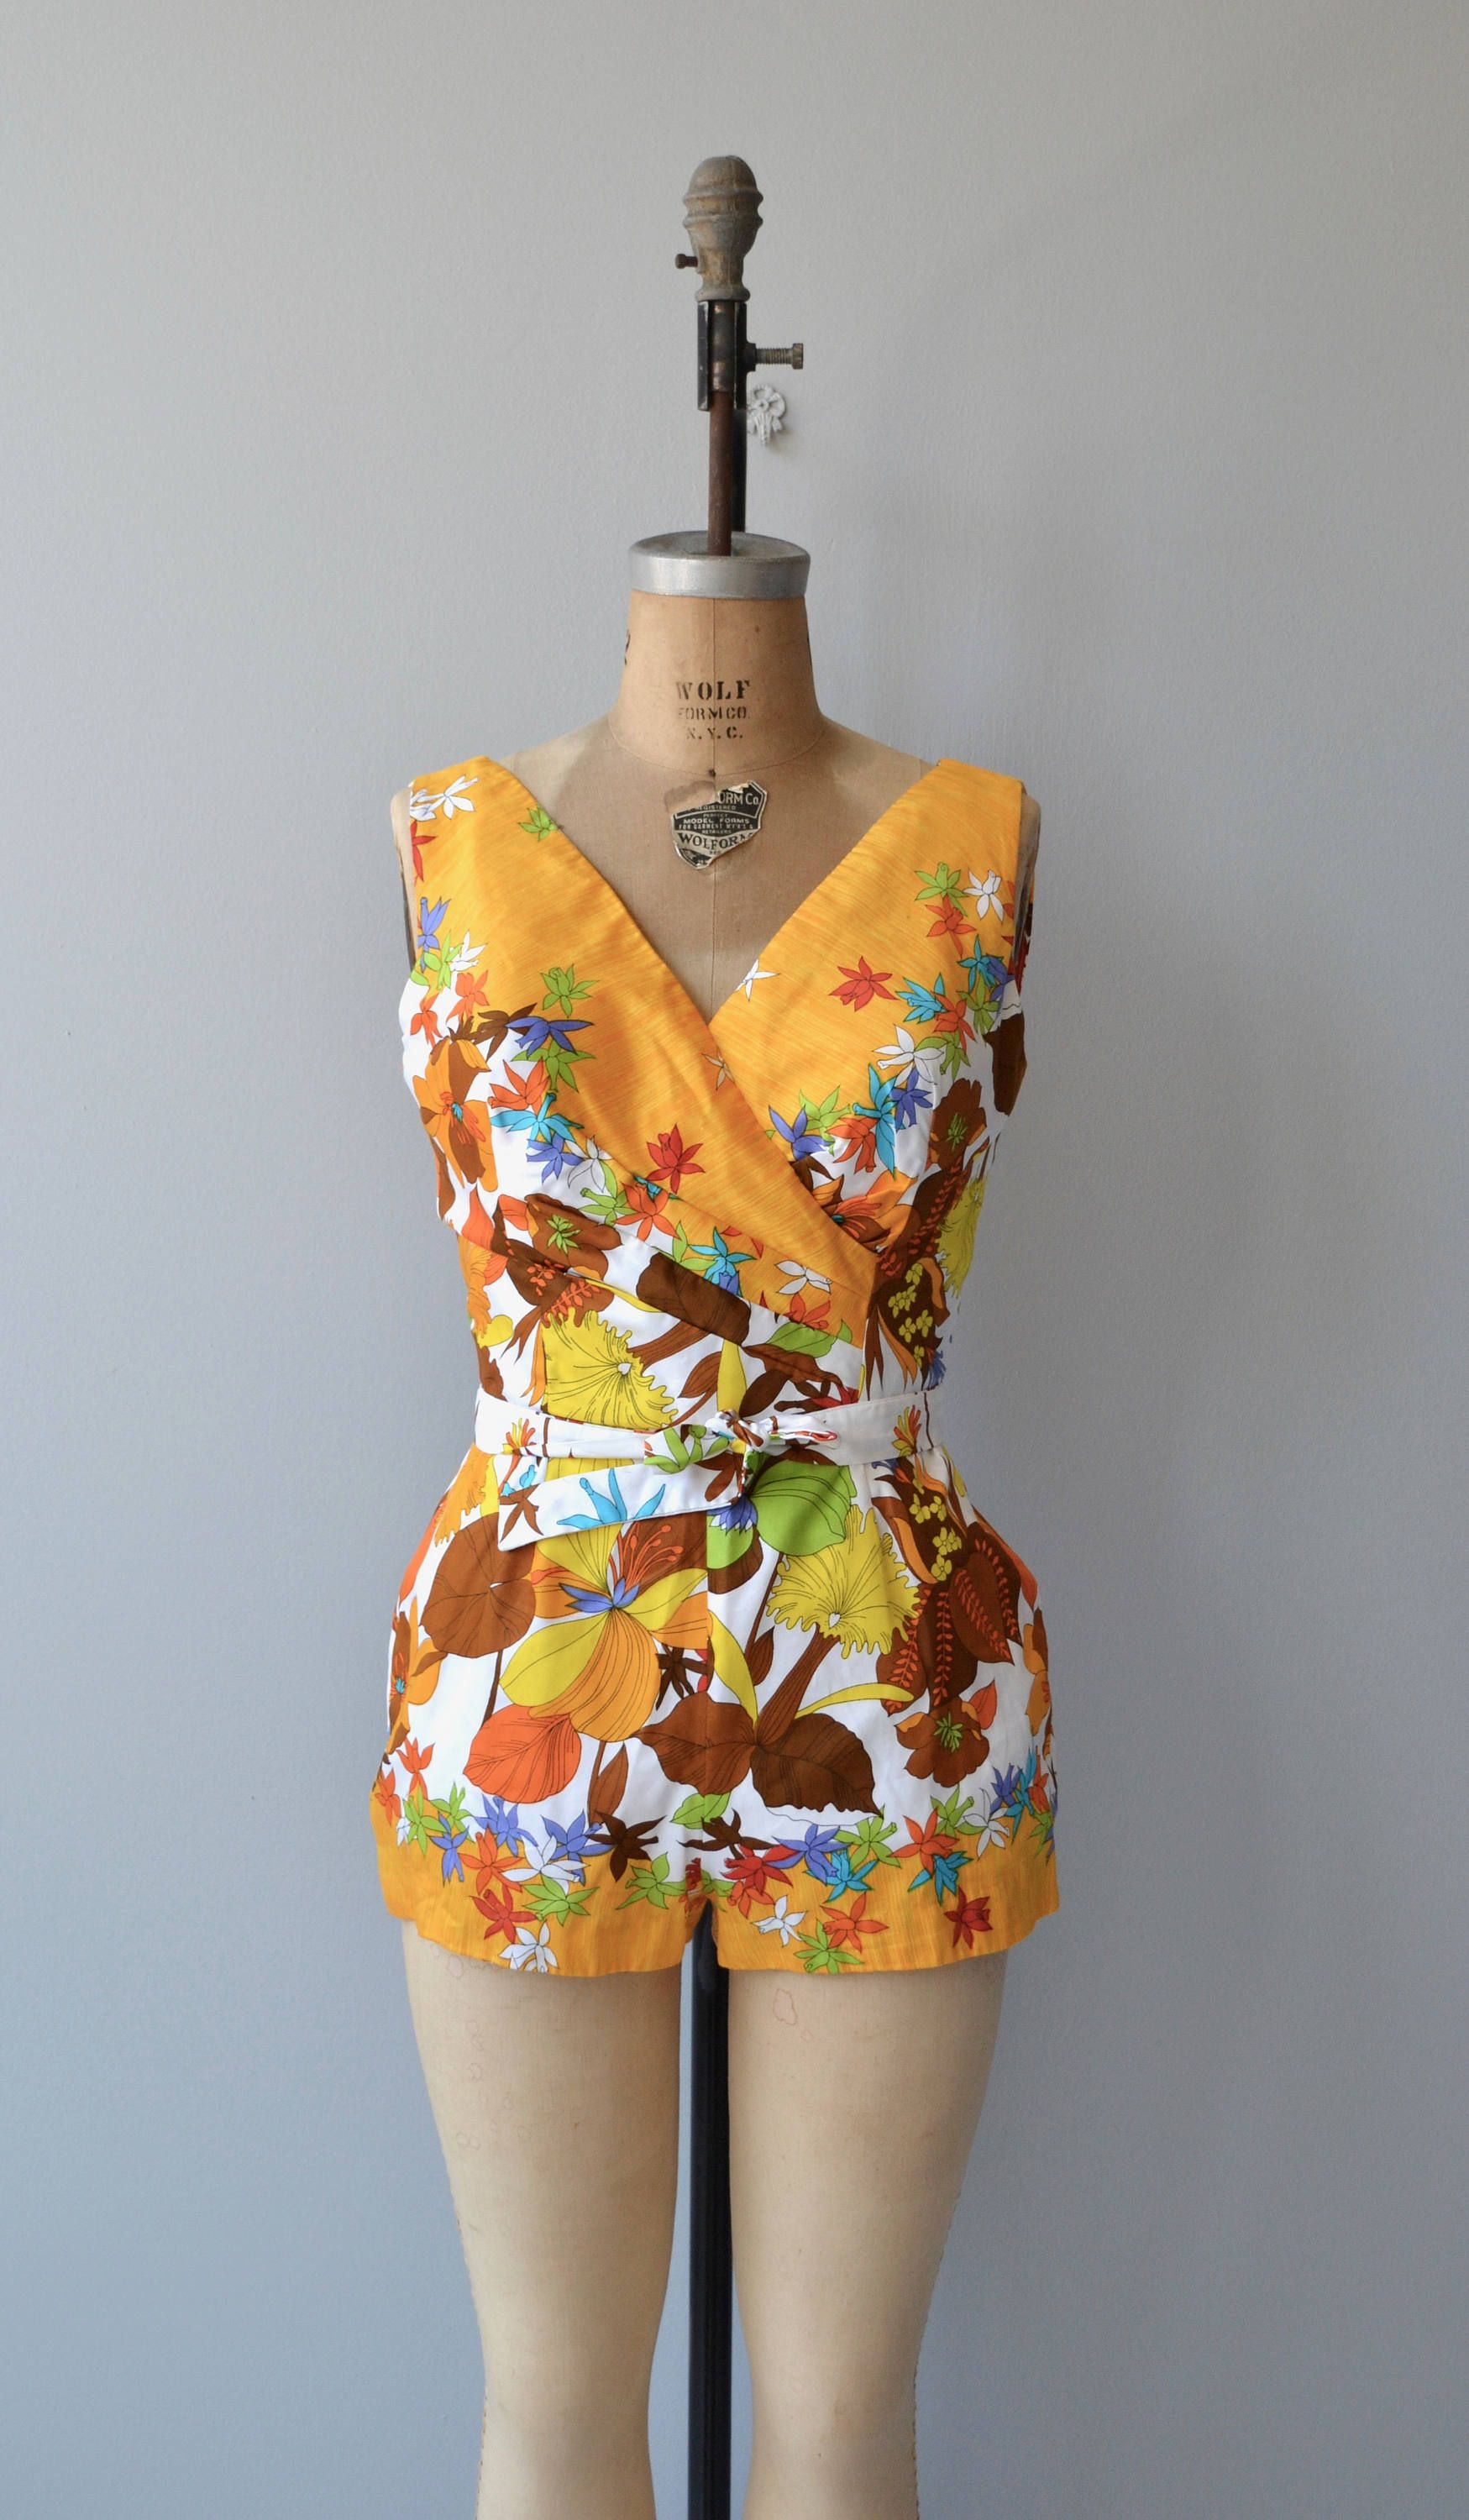 Vintage 1960s super fun cotton swimsuit/playsuit with fantastic floral print, wideset shoulders, surplice gathered bodice, matching belt, boy shorts and metal back zipper. ✂-----Measurements fits like: small/medium bust: 38-40 waist: 26-27 hip: 38 length: 31 brand/maker: Jacobsons condition: excellent ✩ layaway is available for this item to ensure a good fit, please read the sizing guide: http://www.etsy.com/shop/DearGolden/policy ✩ more lingerie | ...